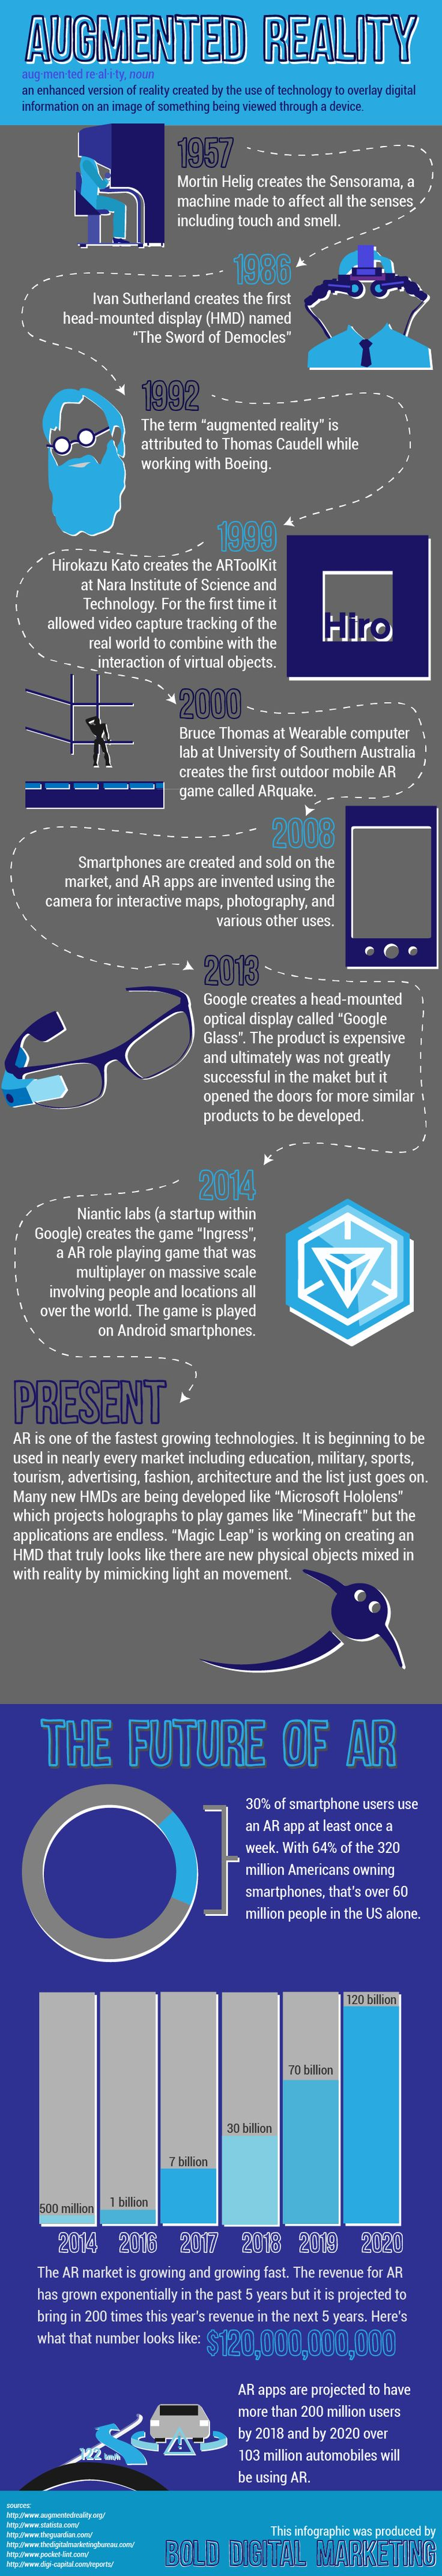 Augmented reality! Putting your virtual reality in the real world. Here is a short history. #TheNewReality